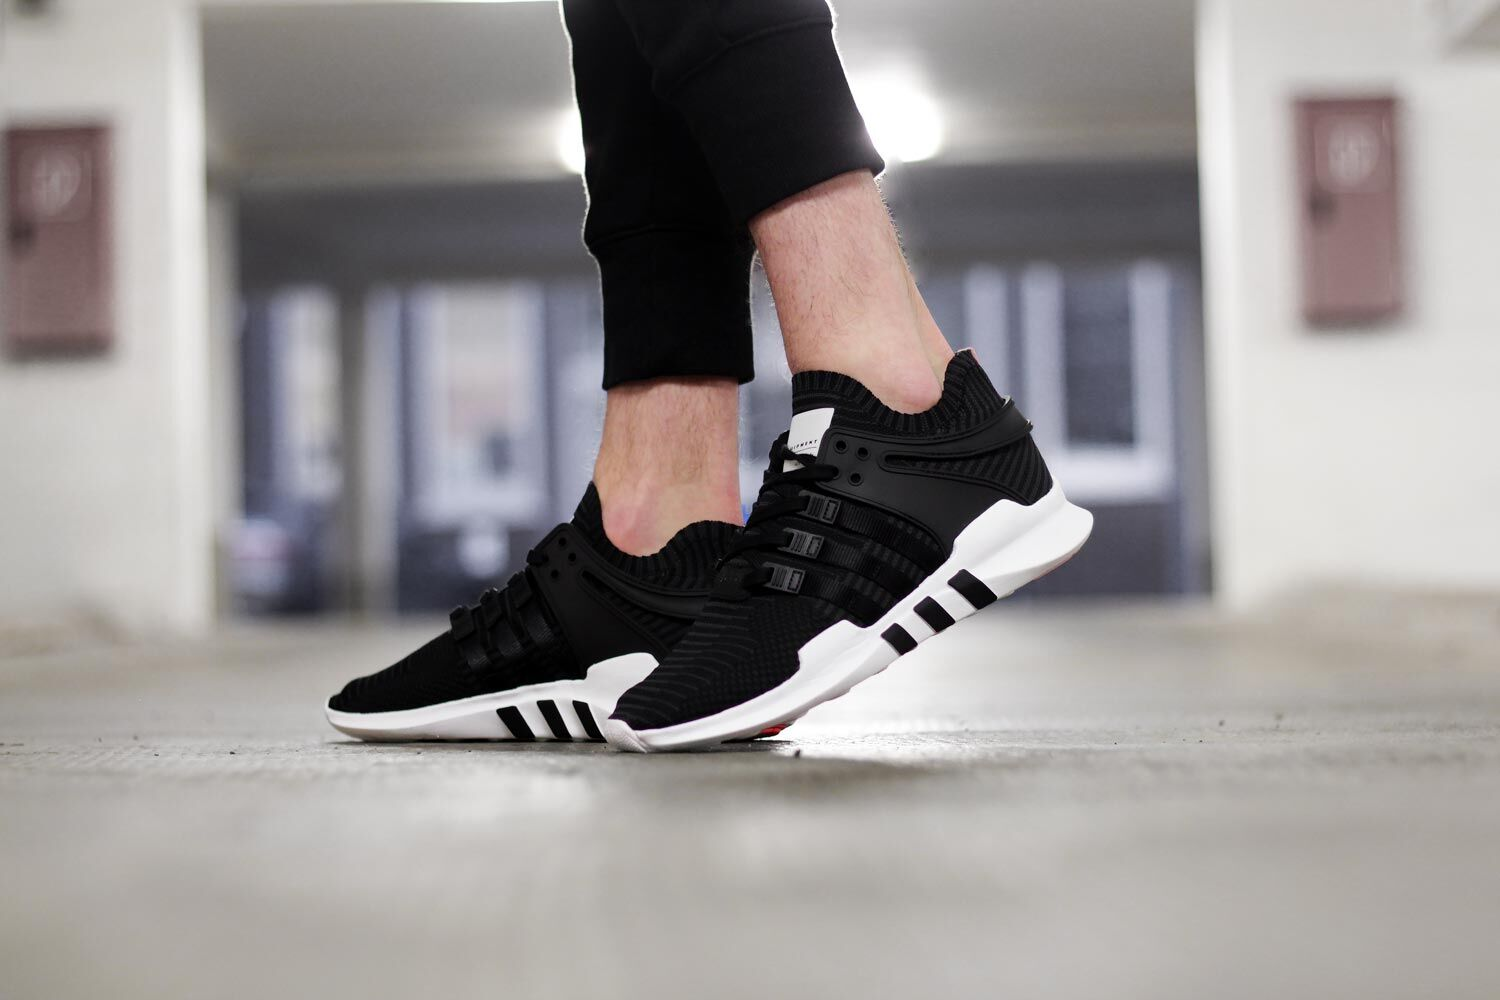 Review & Pickup Adidas EQT Support ADV